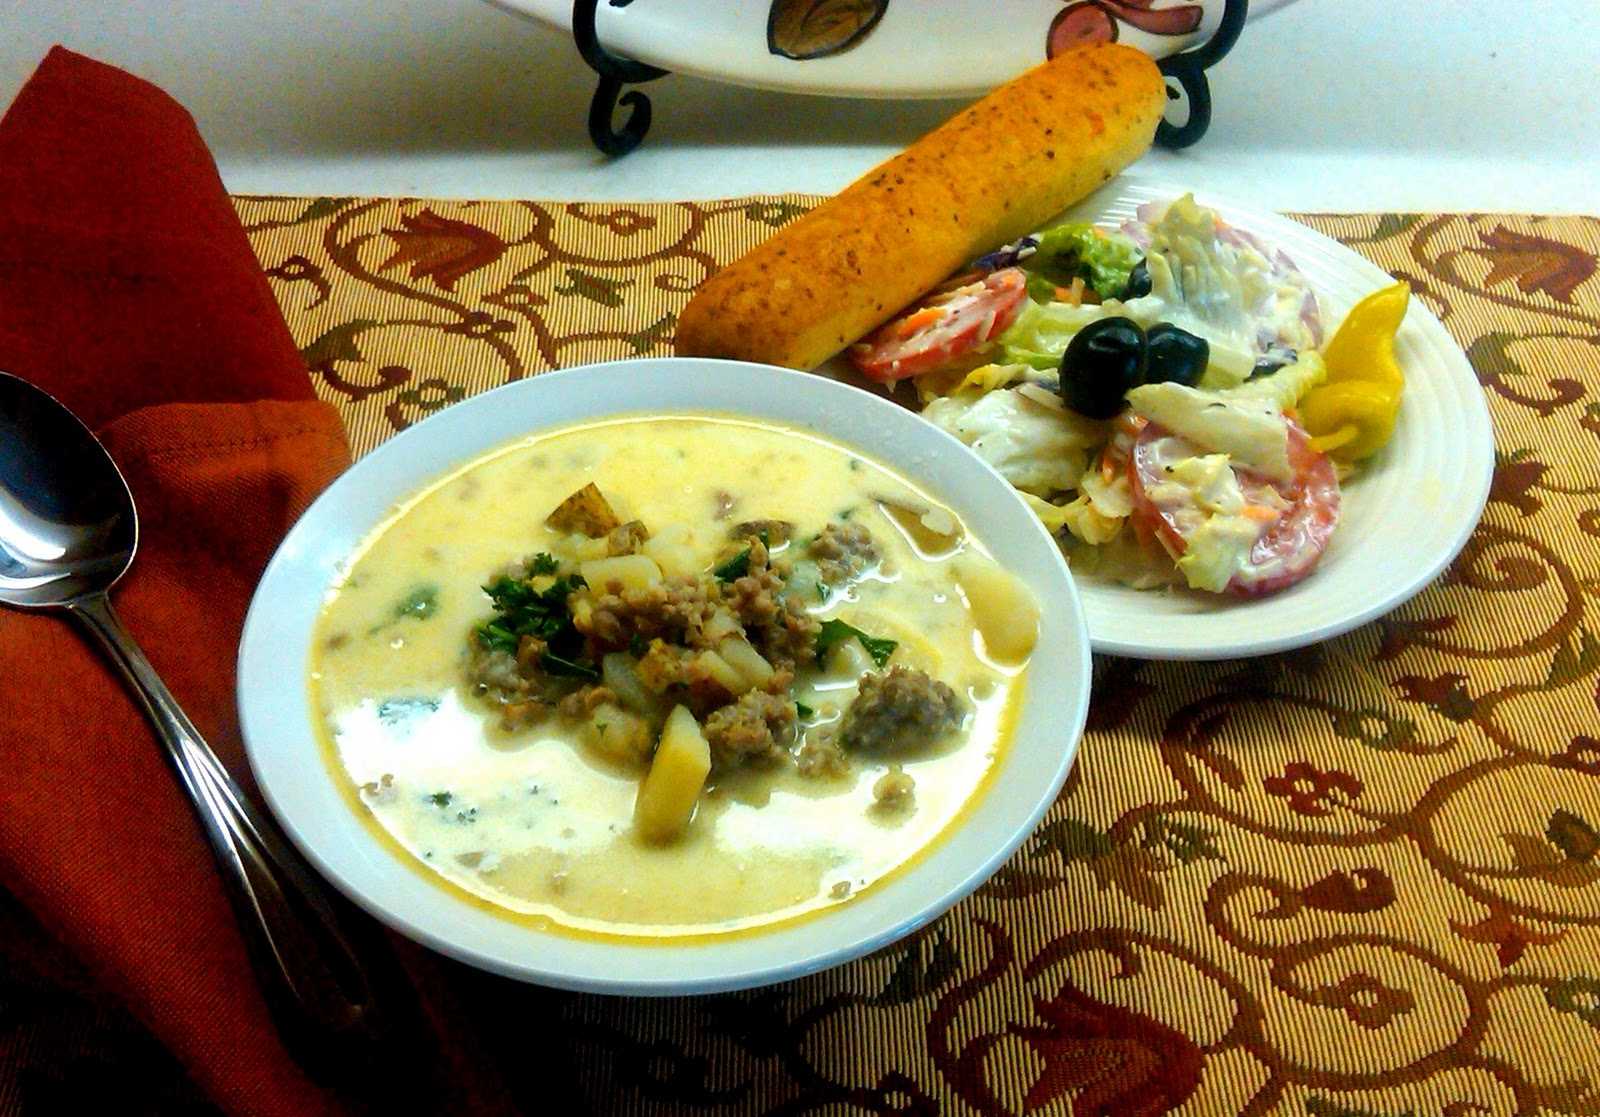 ... Night at Home! Copy Cat: Zuppa Toscana, Olive Garden Salad & Dressing